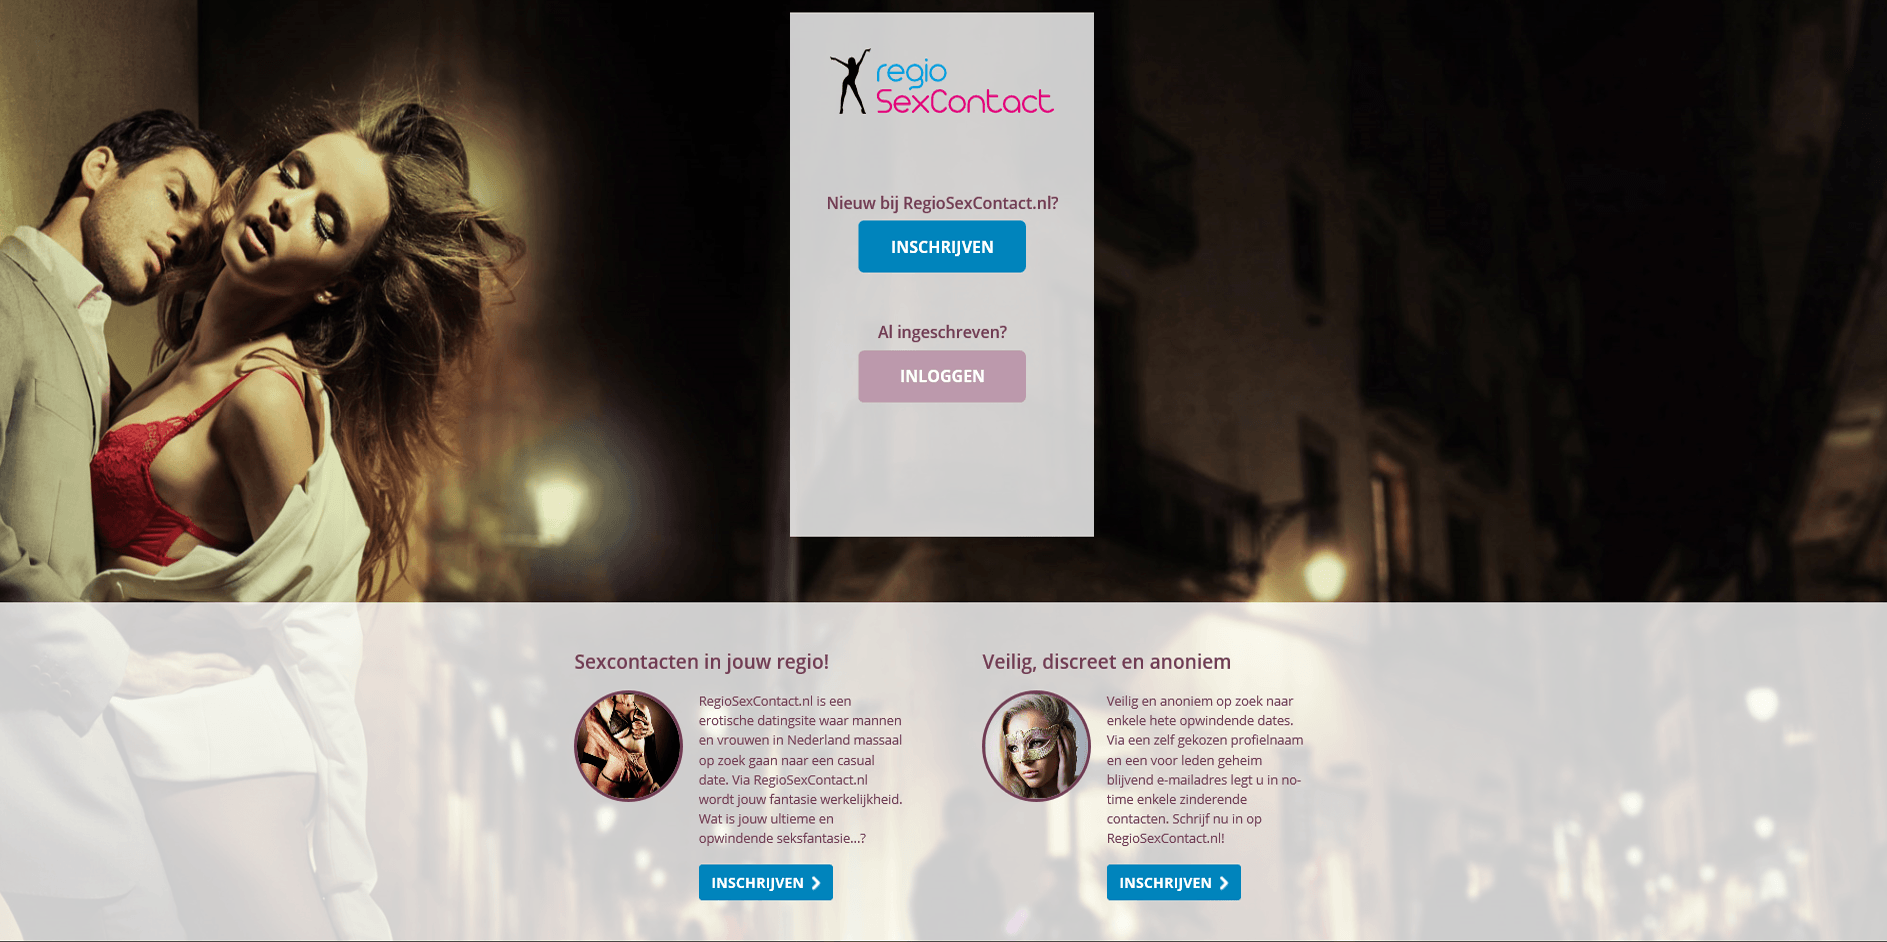 meest veilige dating site Matchmaking internationale handel